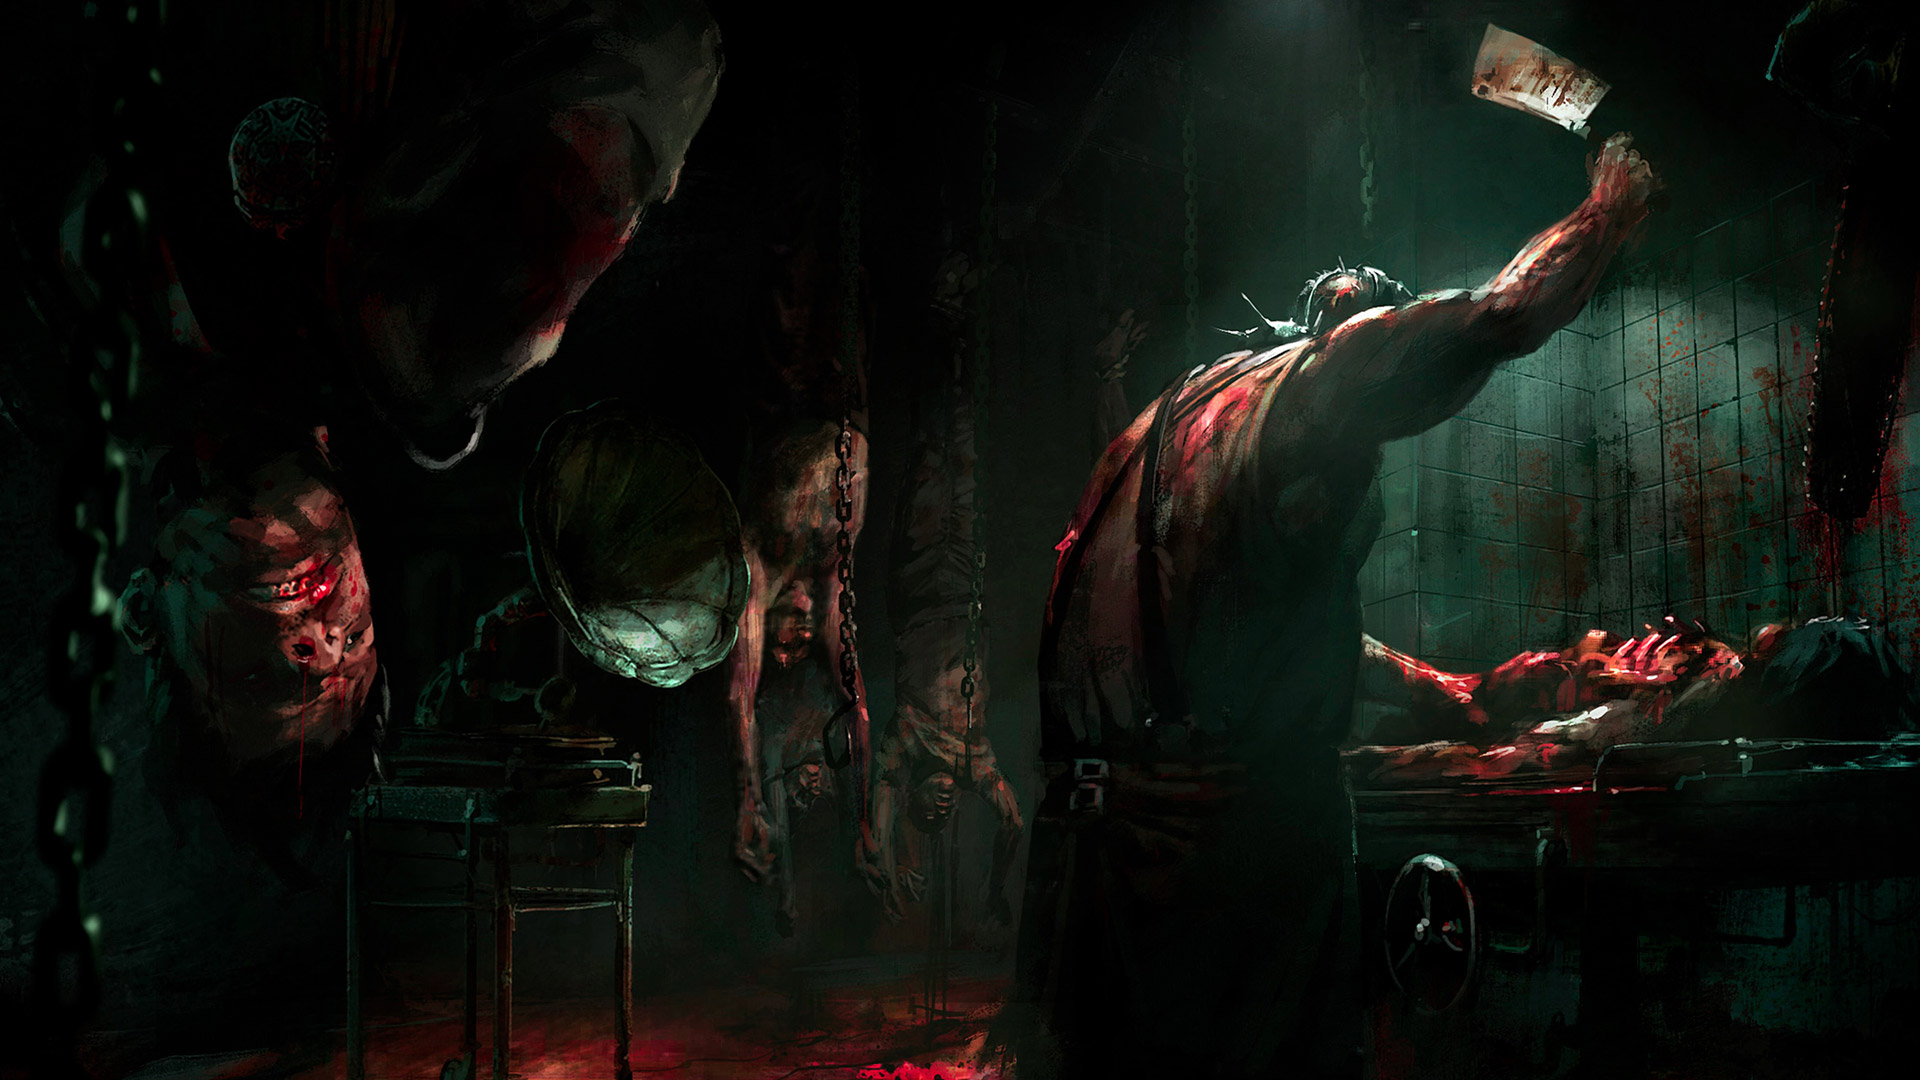 The Evil Within Wallpaper in 1920x1080